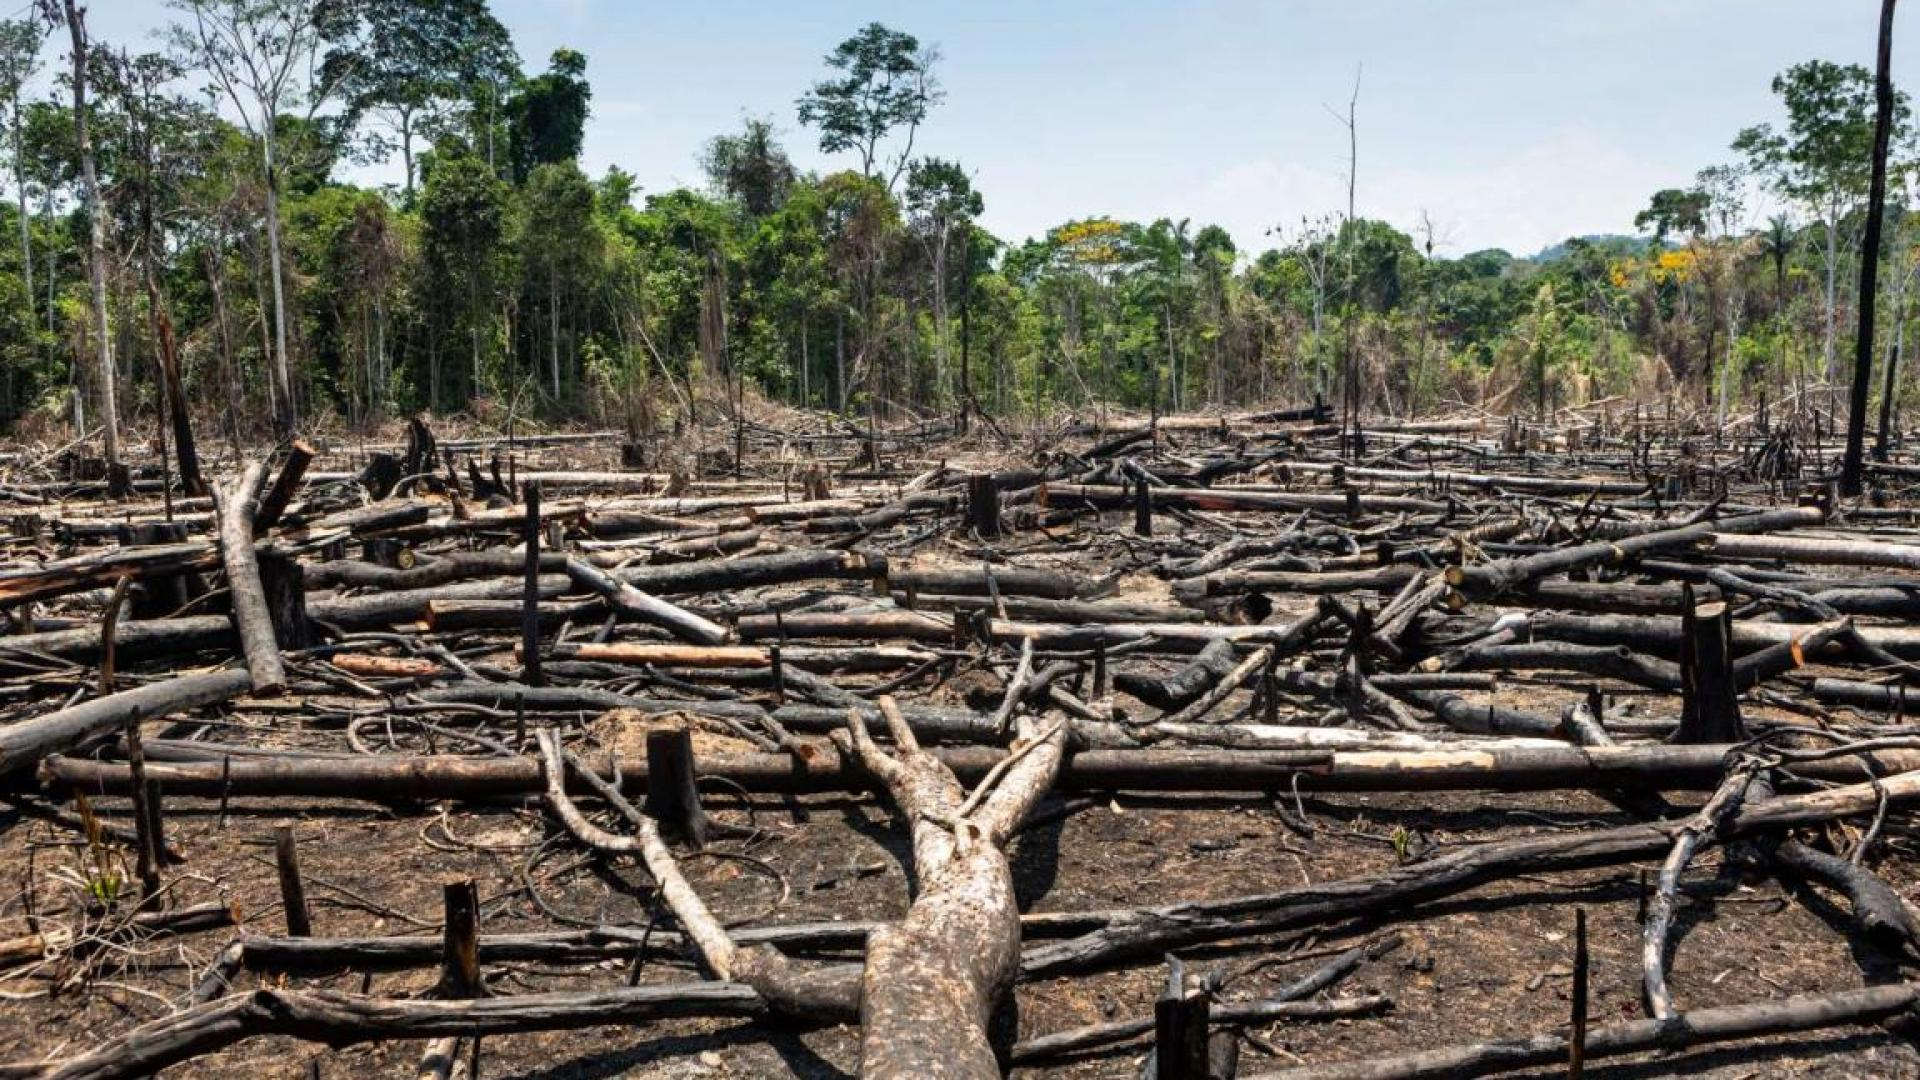 Image shows deforested area